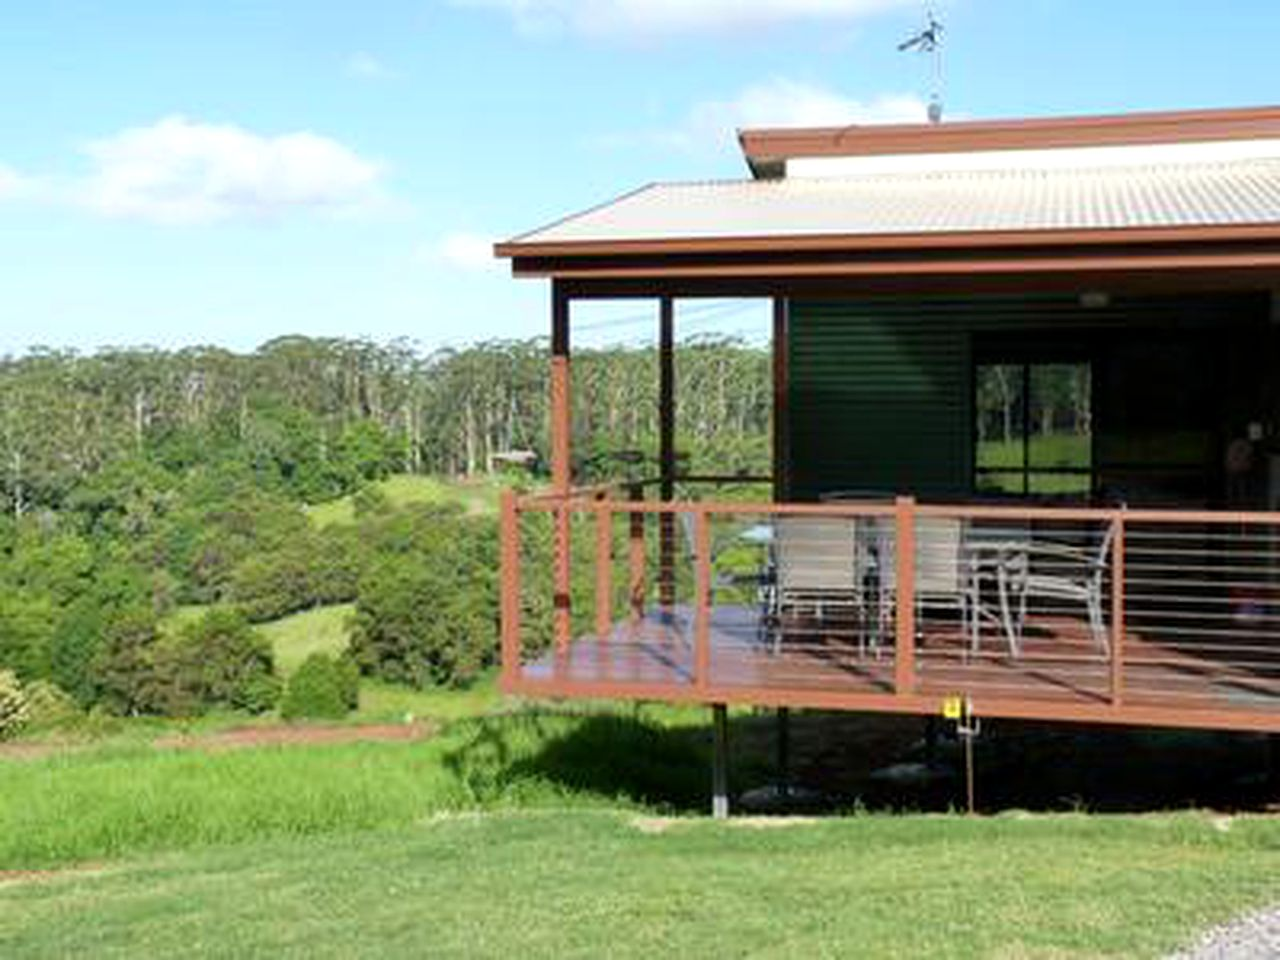 Cabins (Bellthorpe, Queensland, Australia)